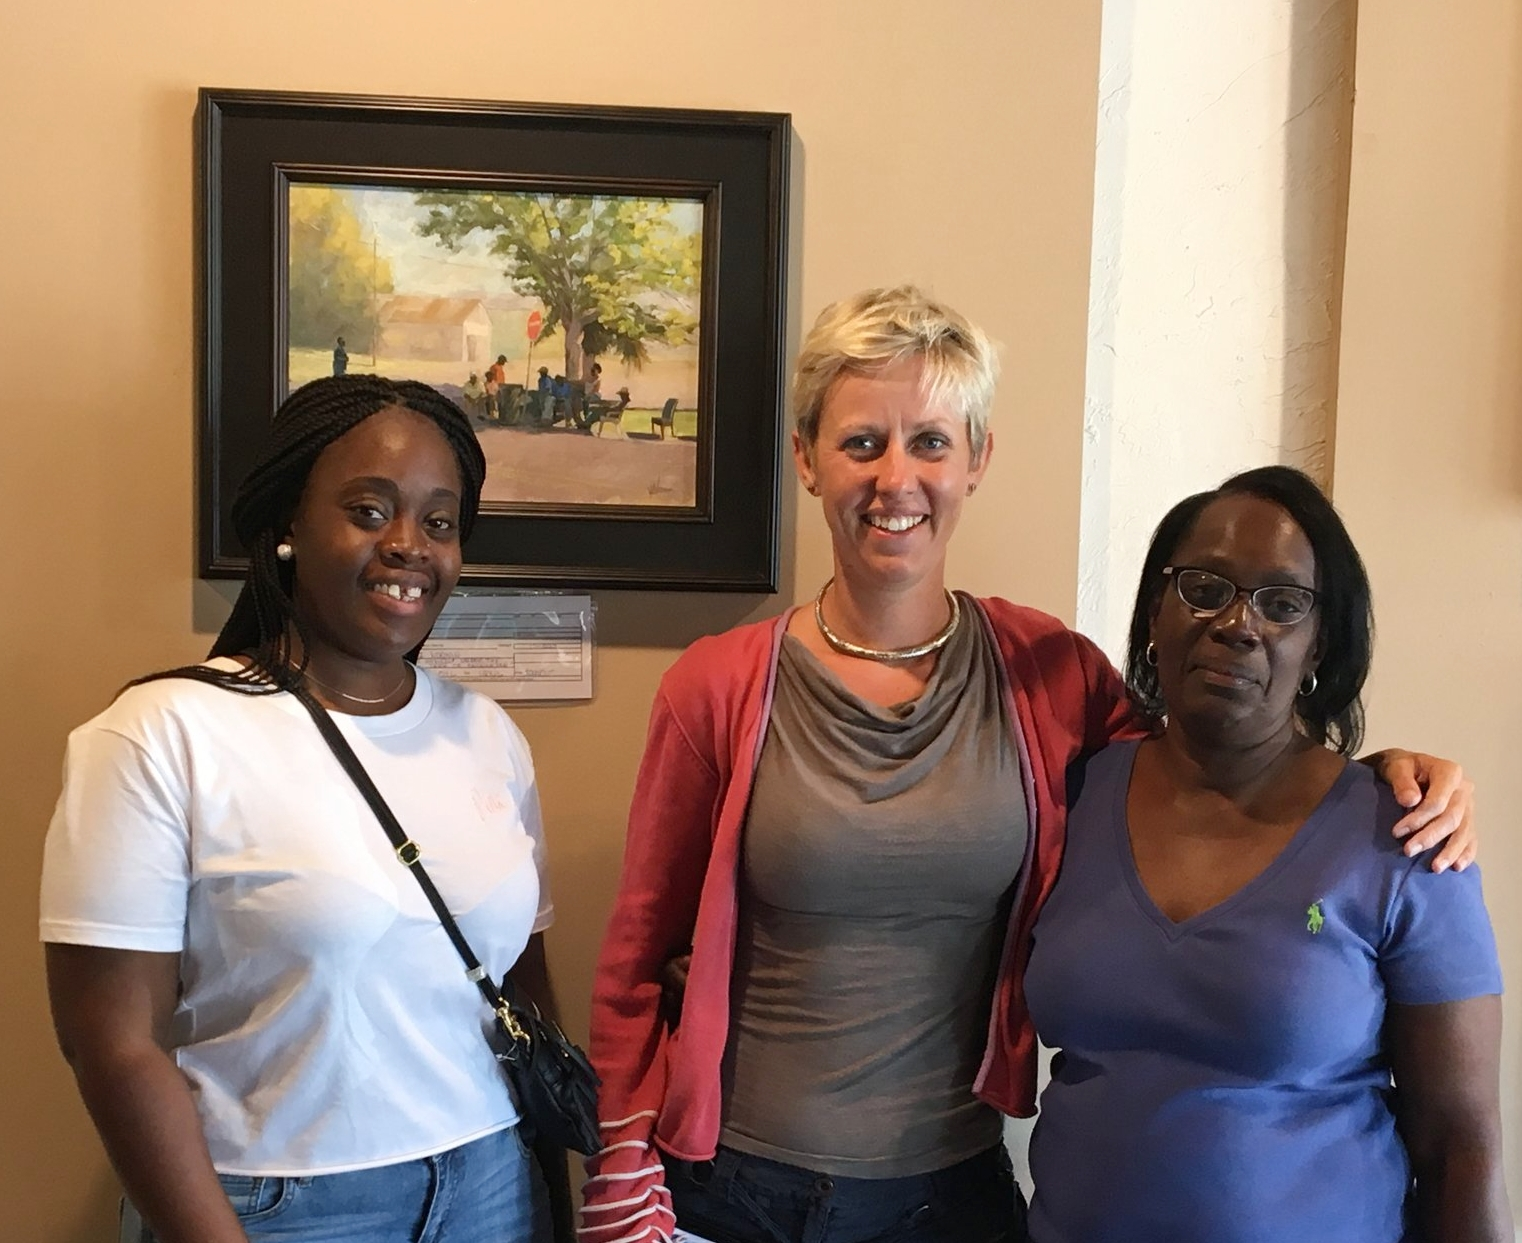 Whitney, me and Sedra with the painting